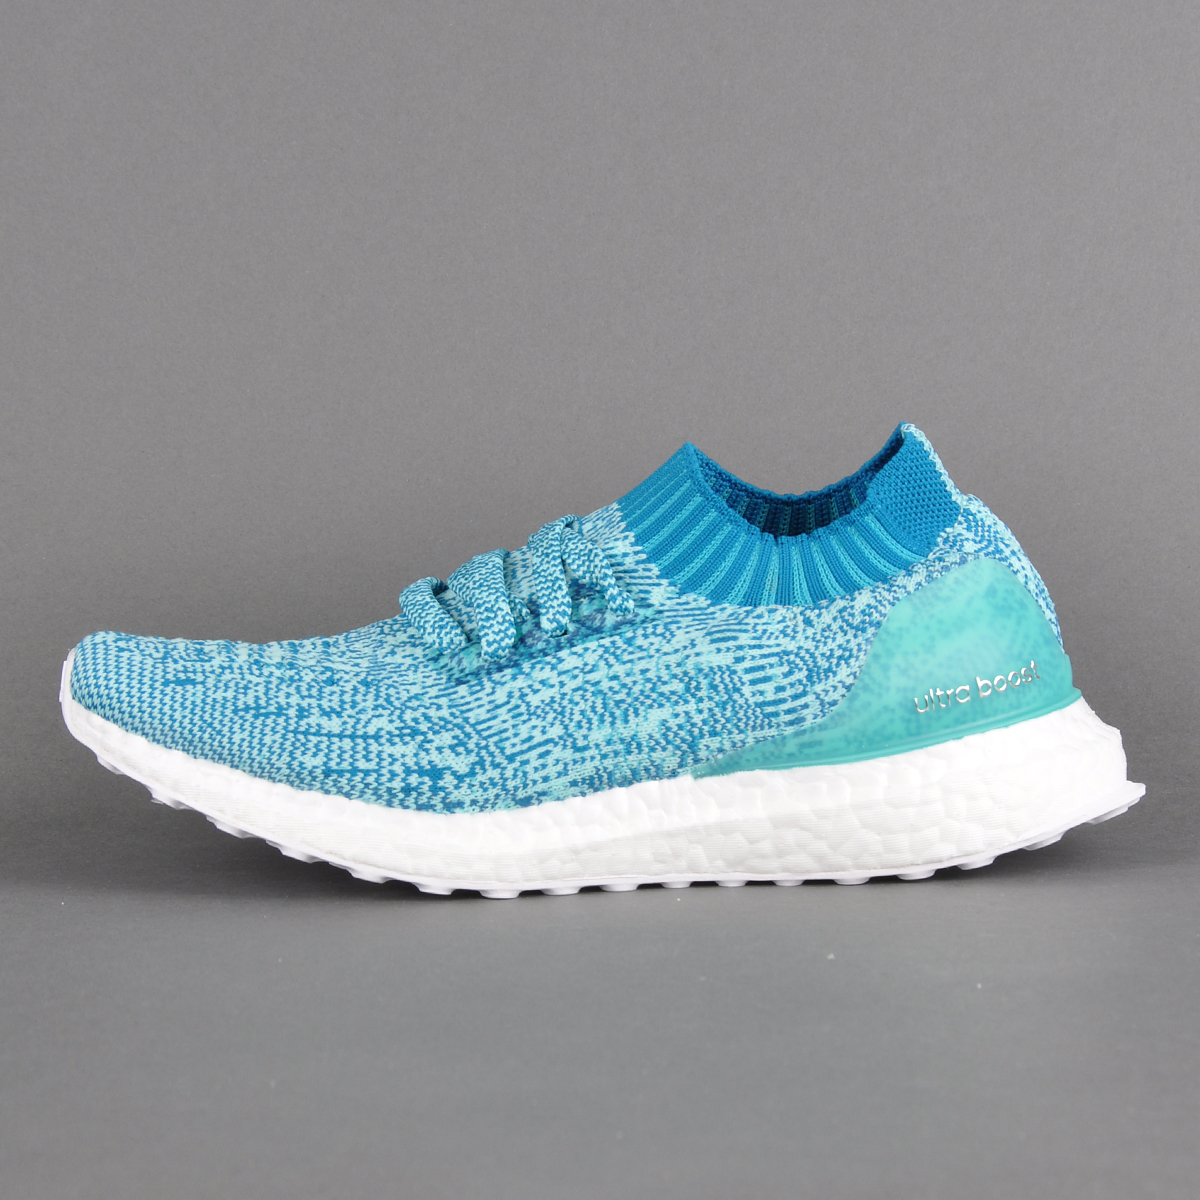 2c13f1c94bcf5 ... authentic adidas ultra boost uncaged 2.0 womens turquoise footwear  white. 1 af761 a0ed3